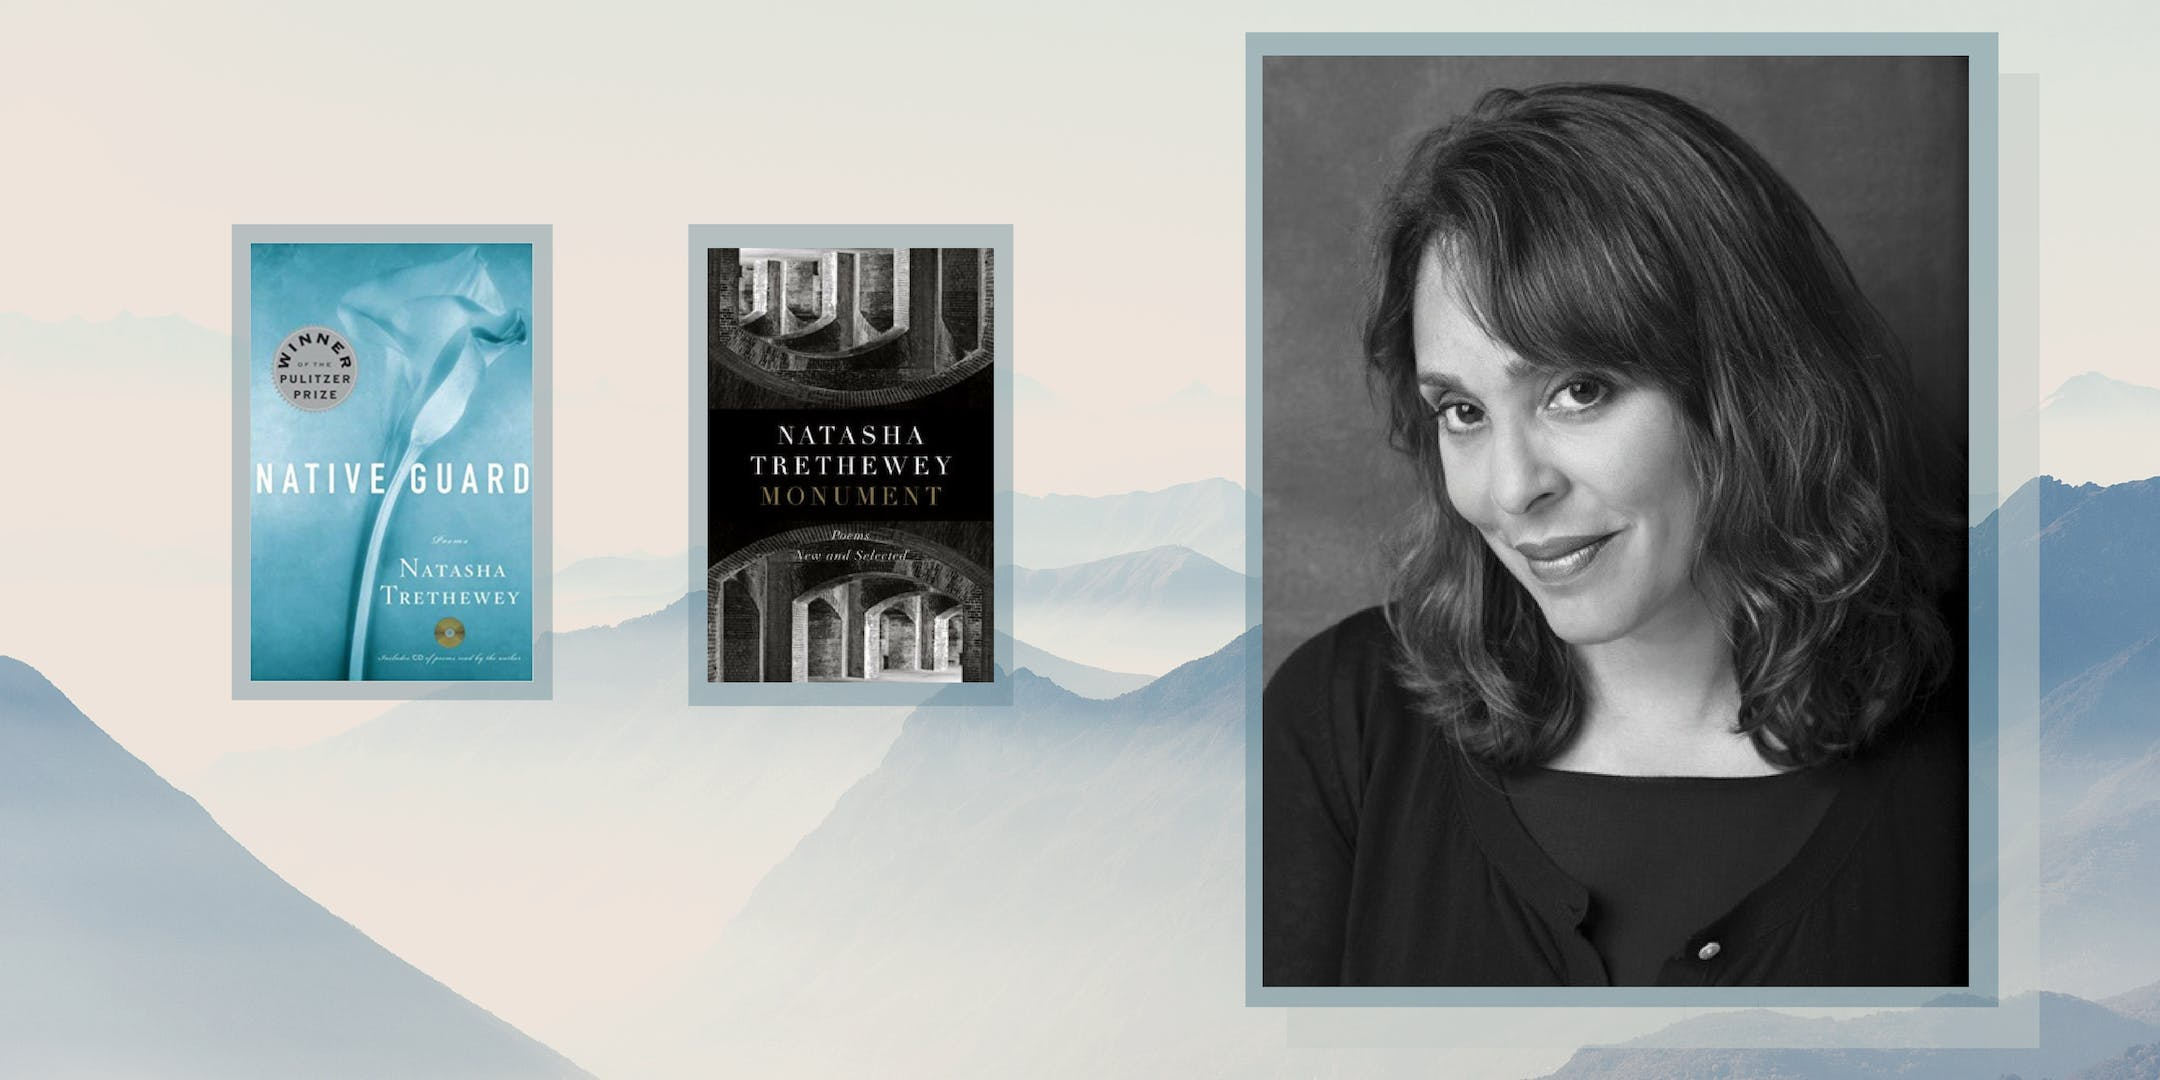 Democracy & the Informed Citizen: An Evening with Natasha Trethewey